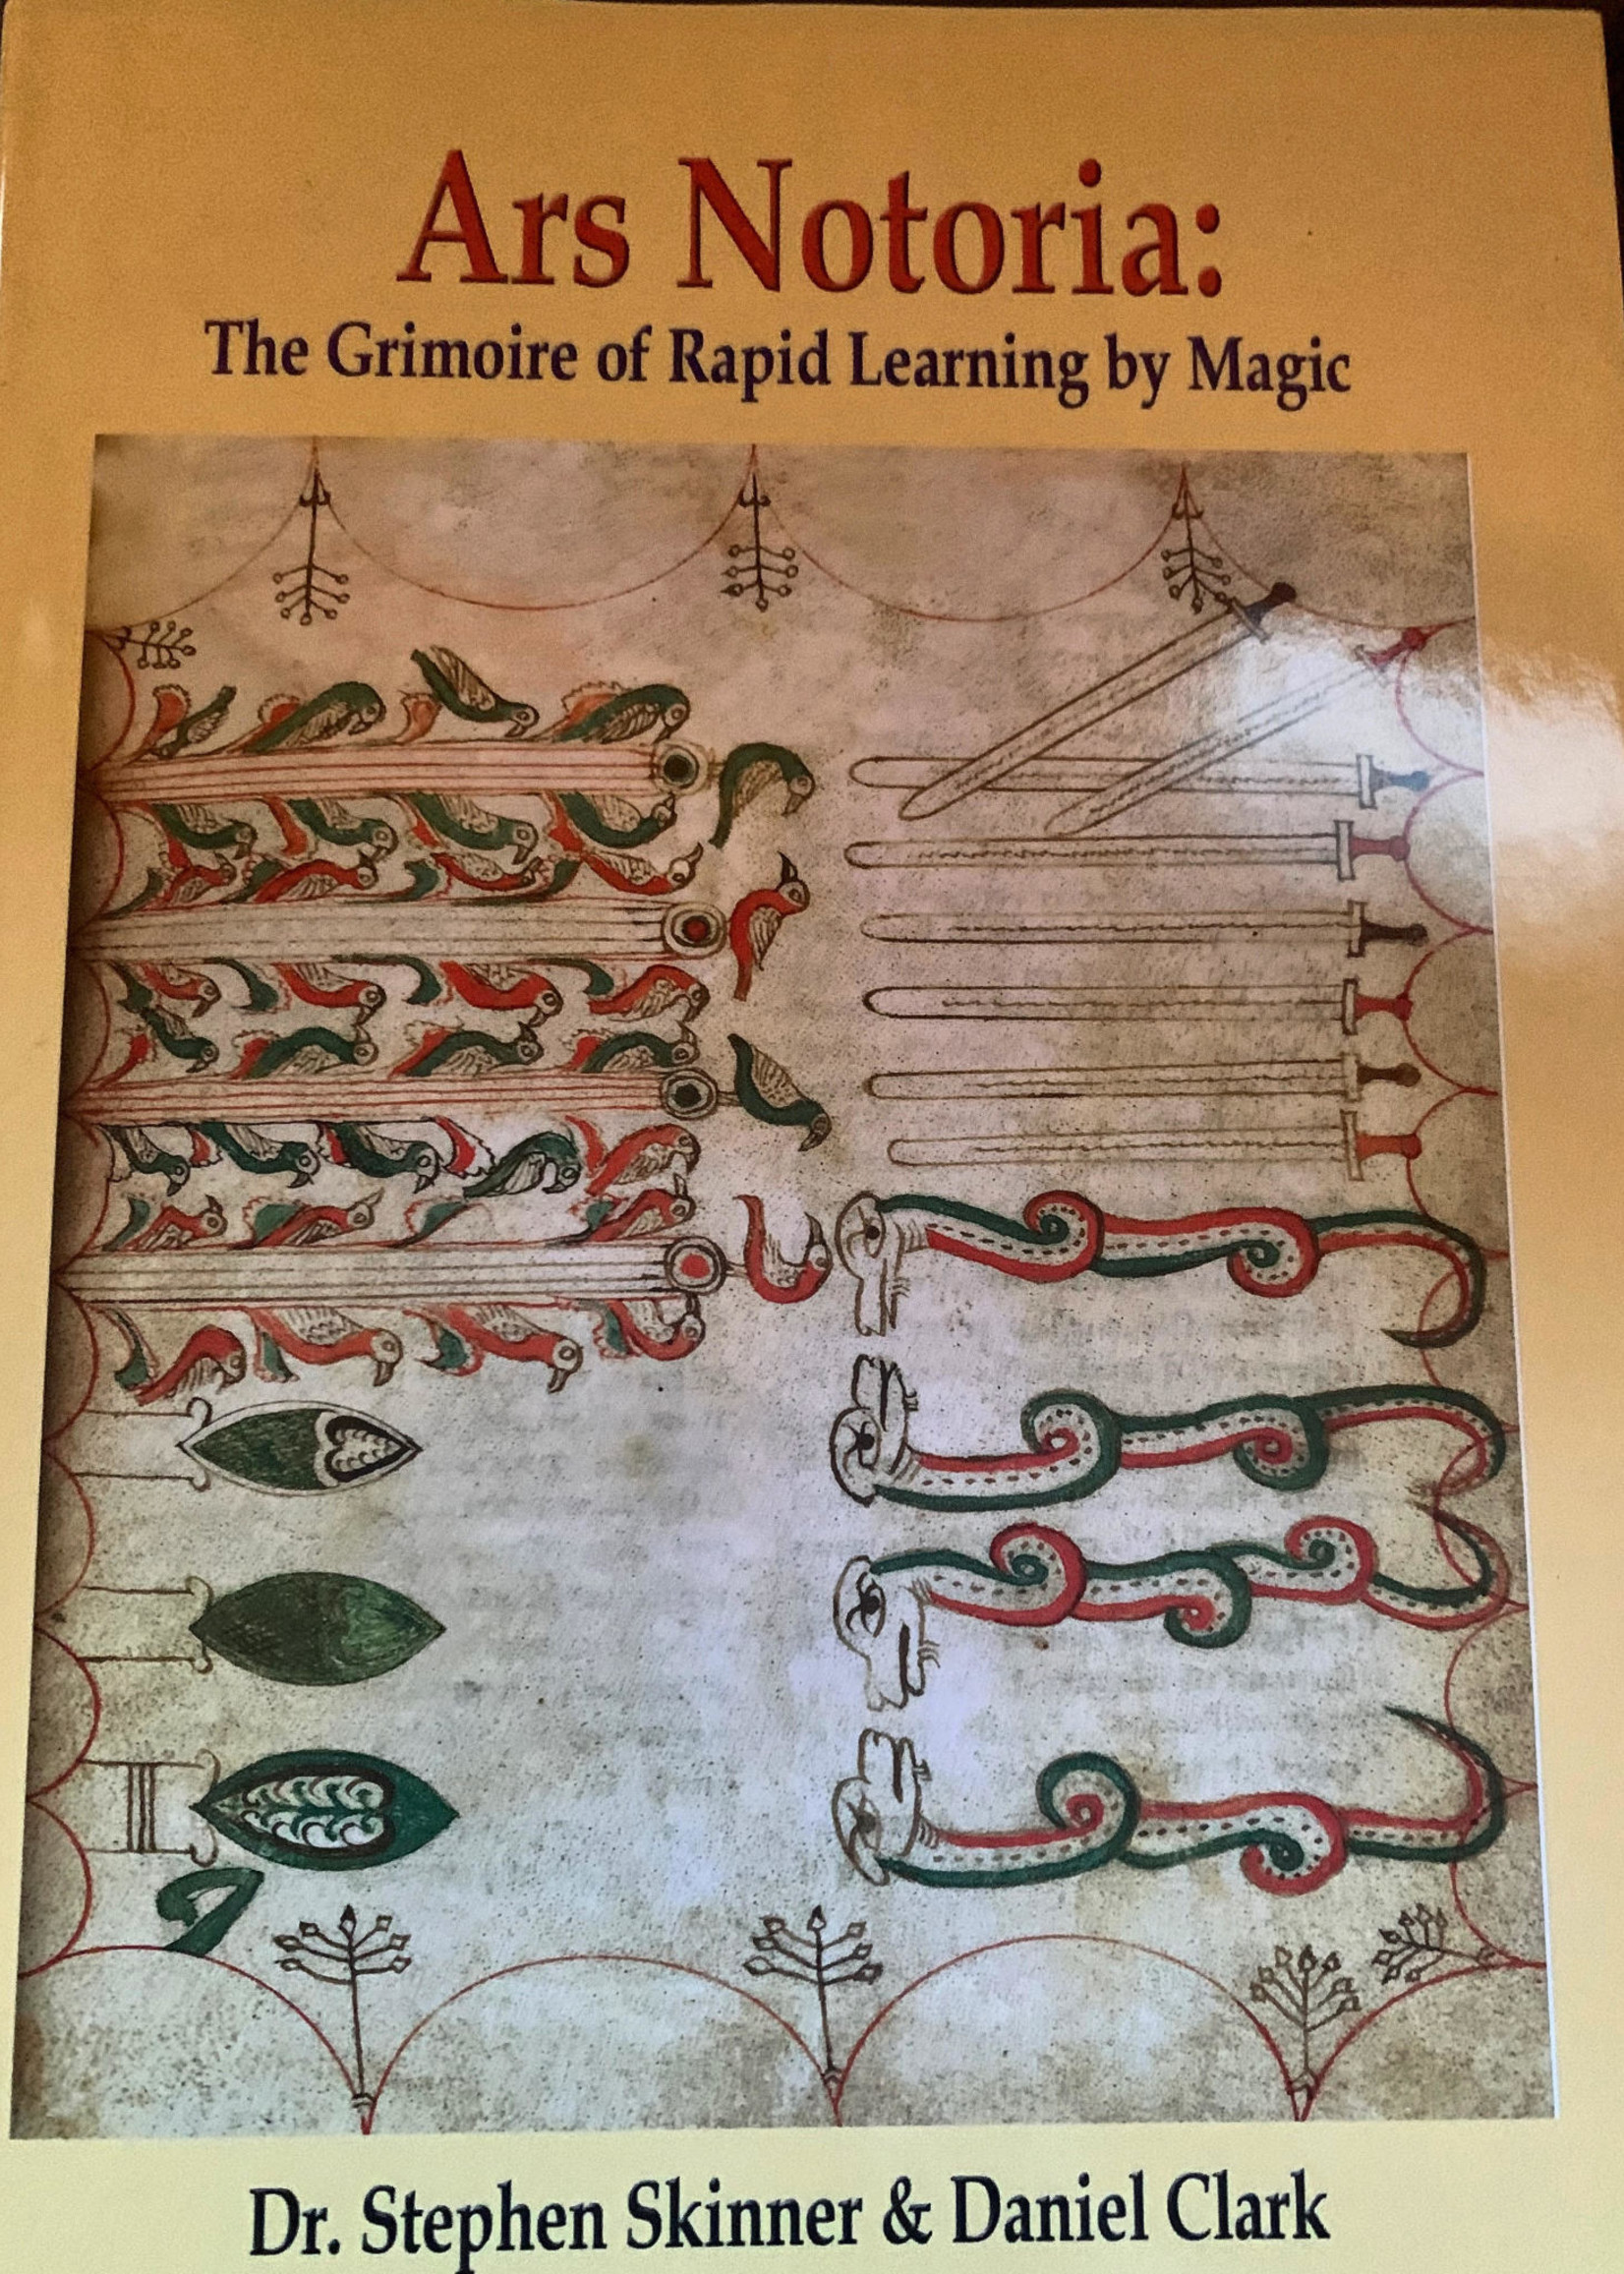 Ars Notoria: The Grimoire of Rapid Learning by Magic - Dr. Stephen Skinner & Daniel Clark